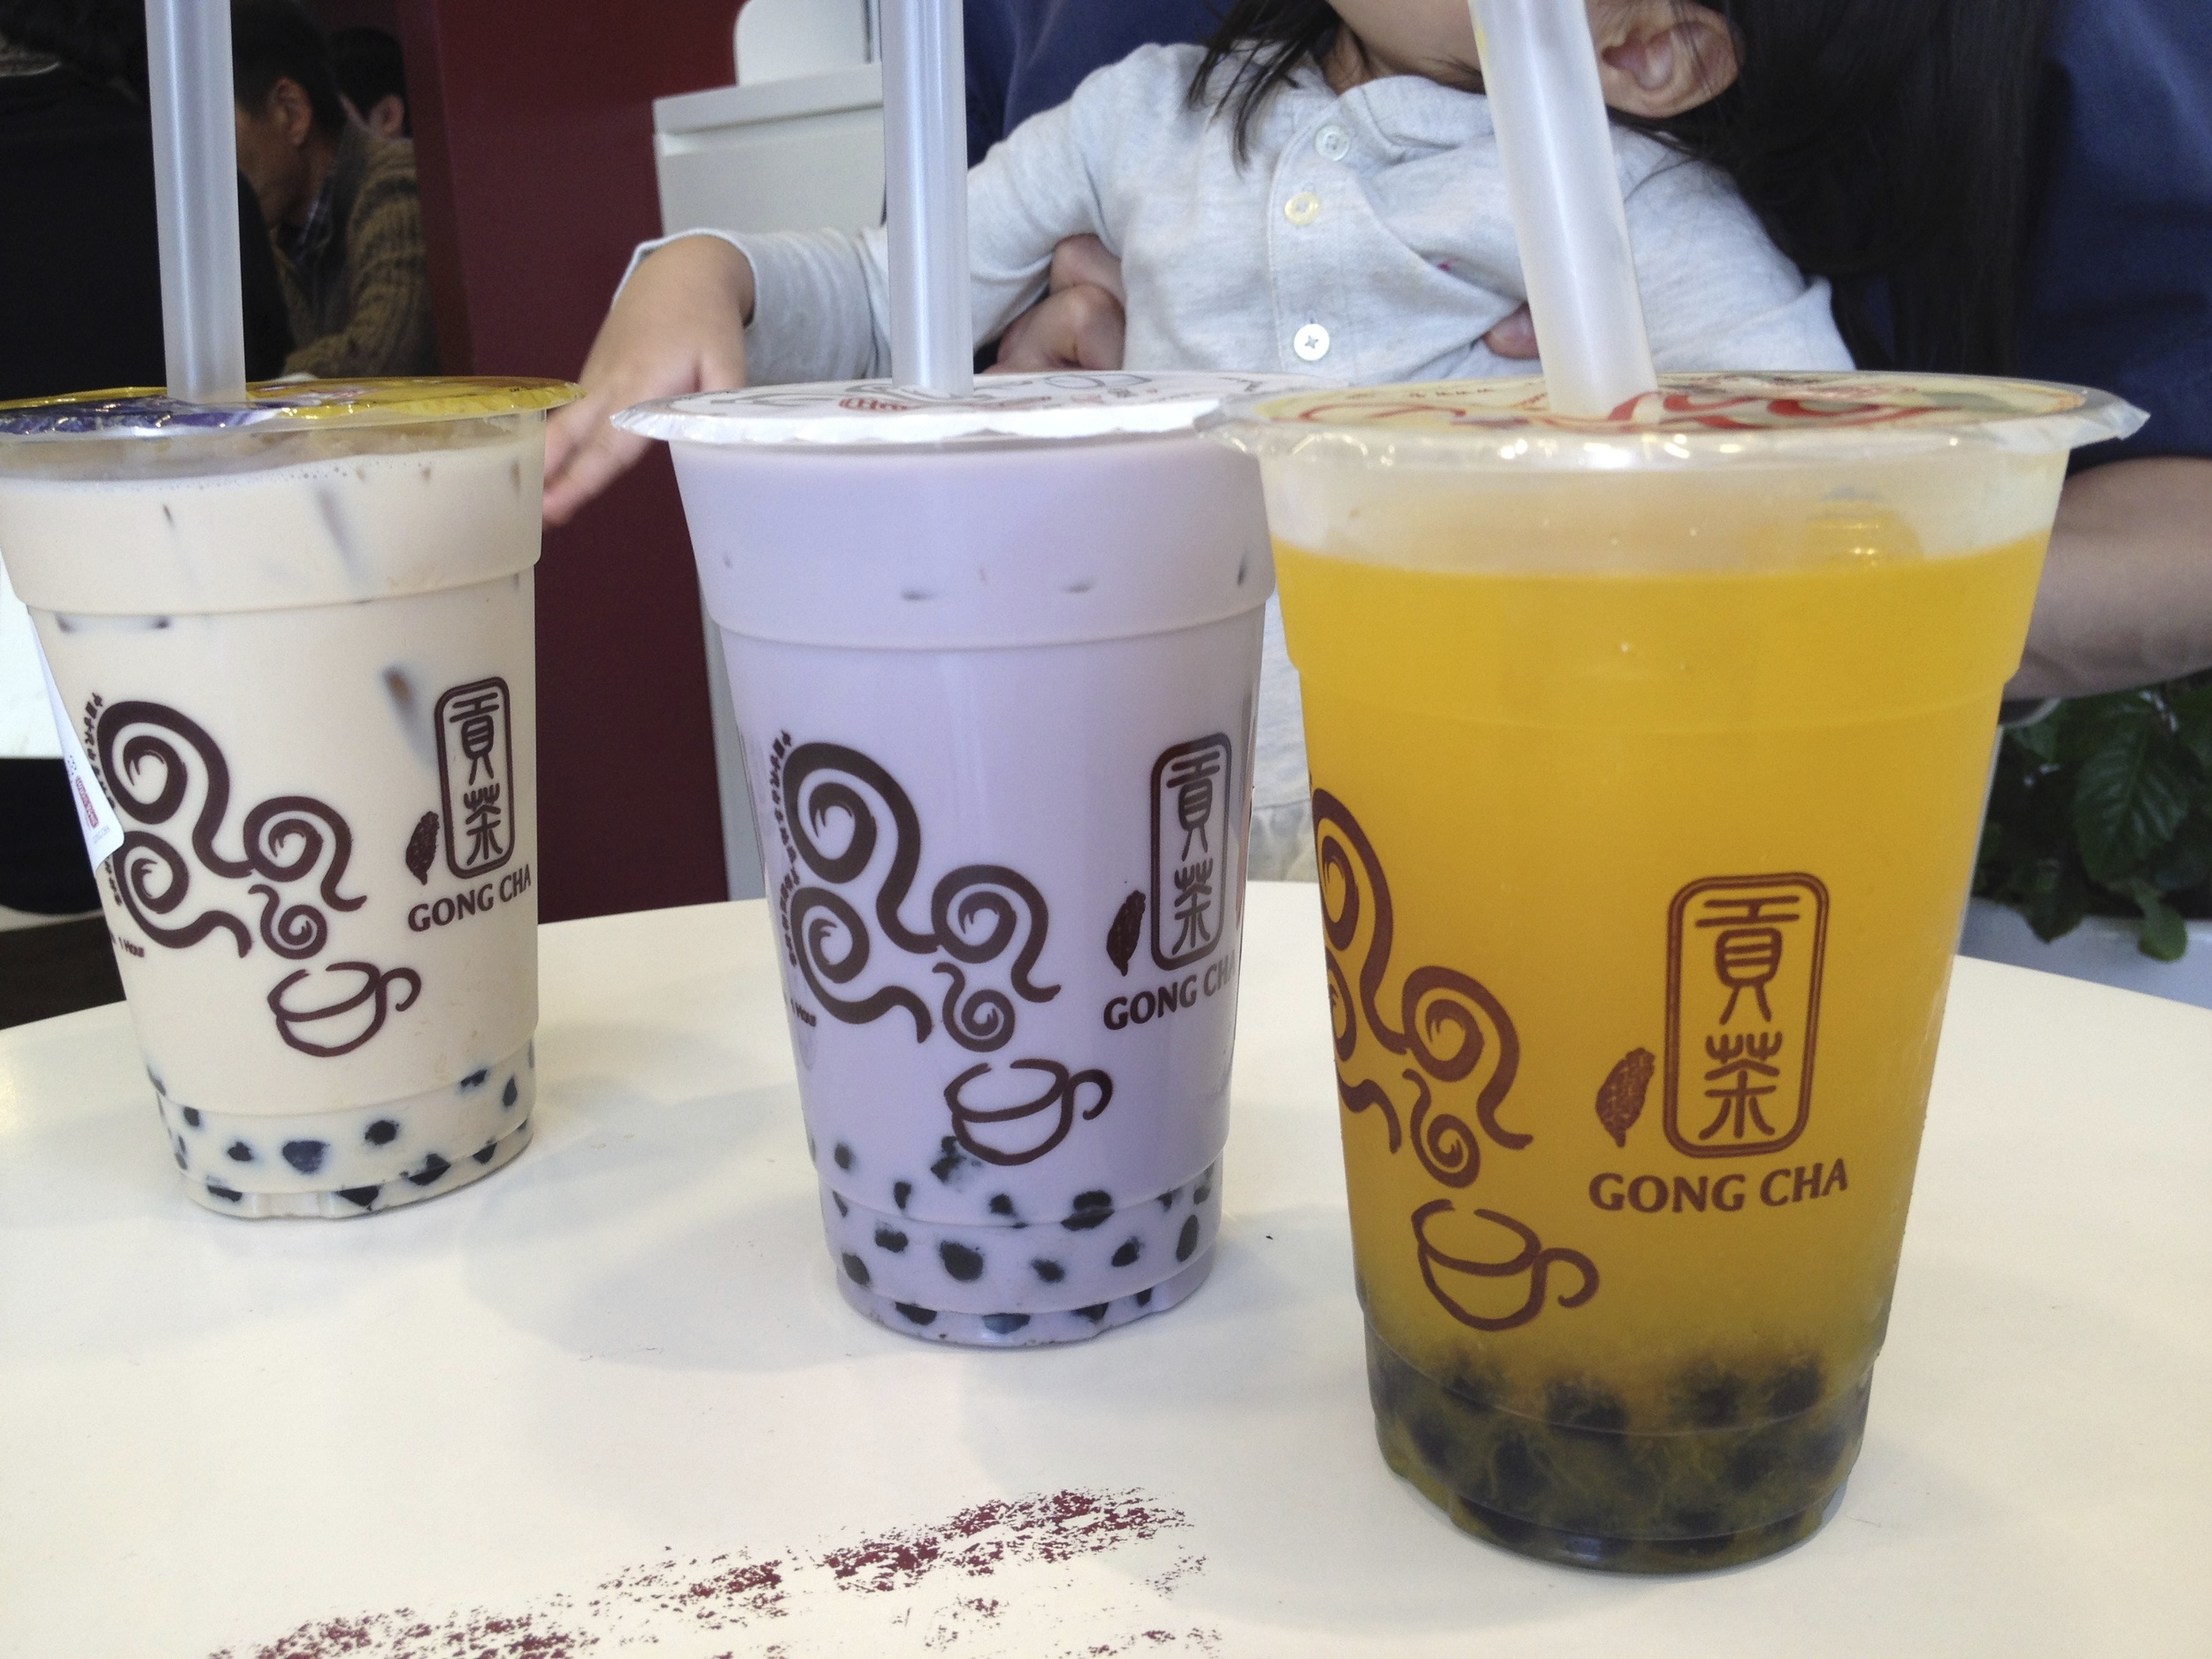 "Wintermelon, Taro, Passion fruit all with tapioca pearls. No matter how many different kinds I've tried, the Taro milk tea, 30% sugar, full ice is always my go-to. Can't go wrong with that! I've tried a ""real taro"" bubble tea before, and it was gross. It actually tasted like a ground up vegetable root (which it is haha), but it was not the flavour I was expecting at all after drinking the fake purple power Taro version. I usually like things in their original natural state, but this Taro drink is one I'll have to stick with the fake purple powder! Love it!"